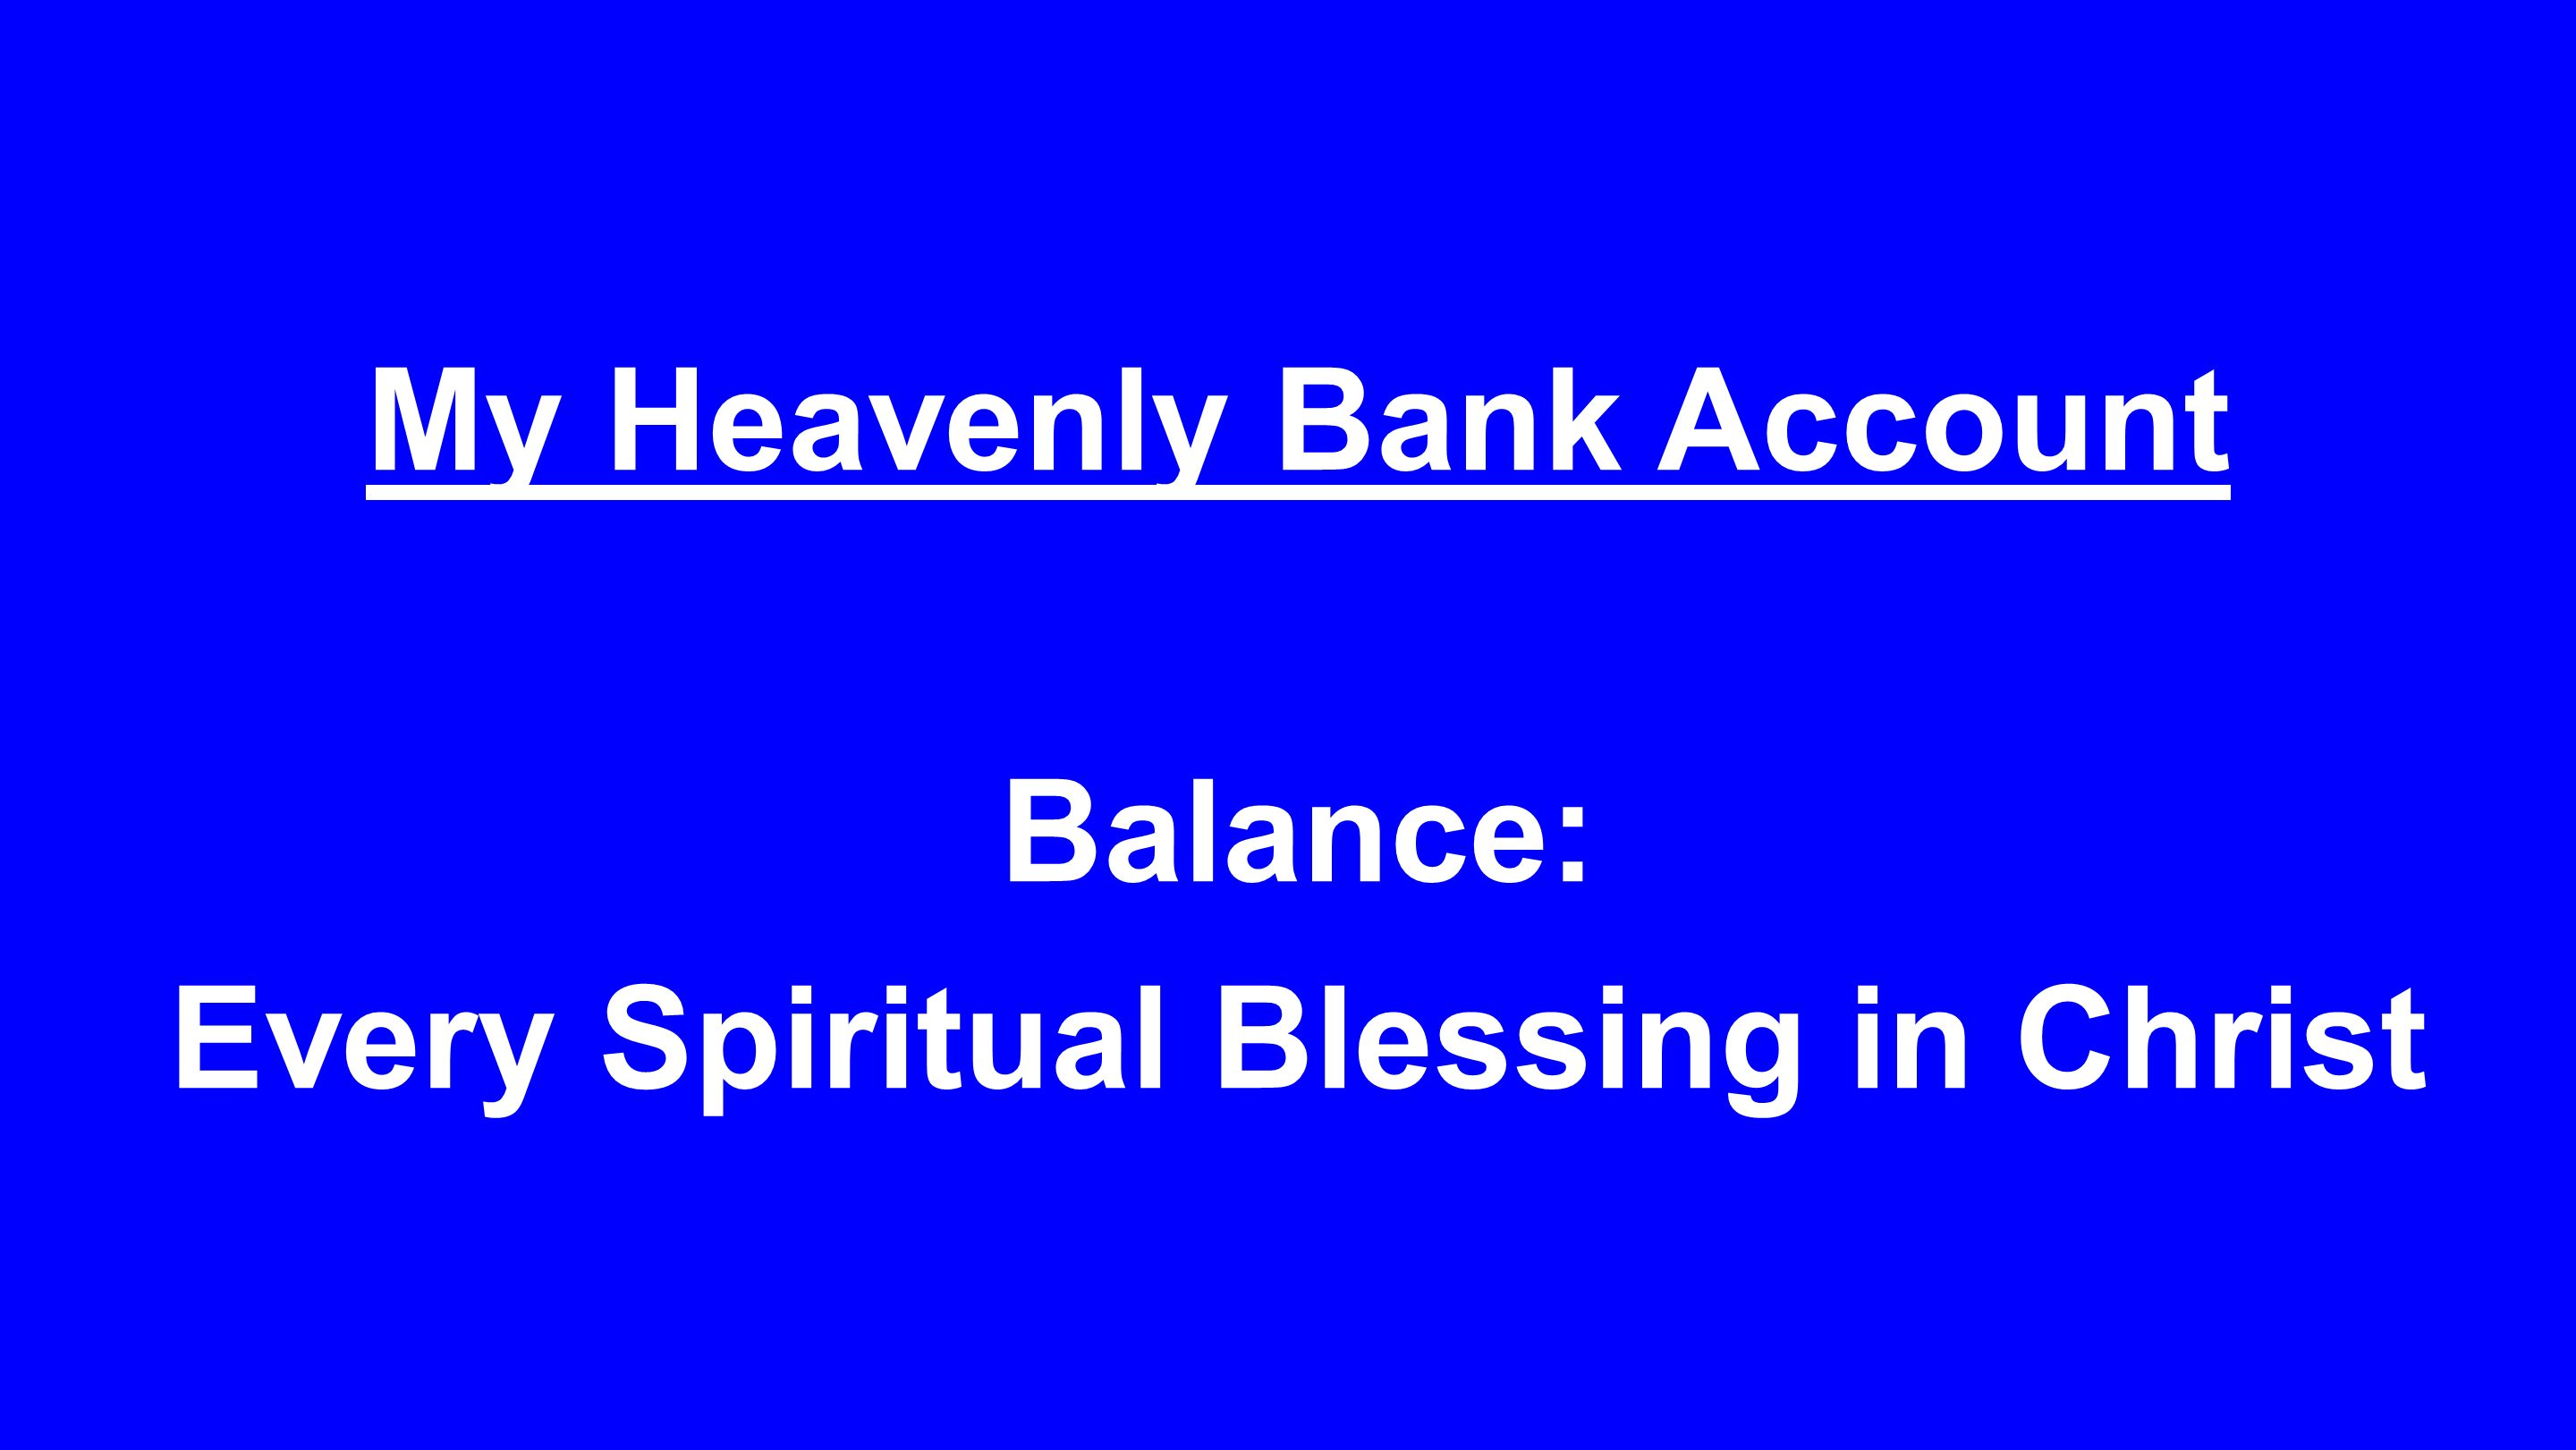 My Heavenly Bank Account Balance: Every Spiritual Blessing in Christ